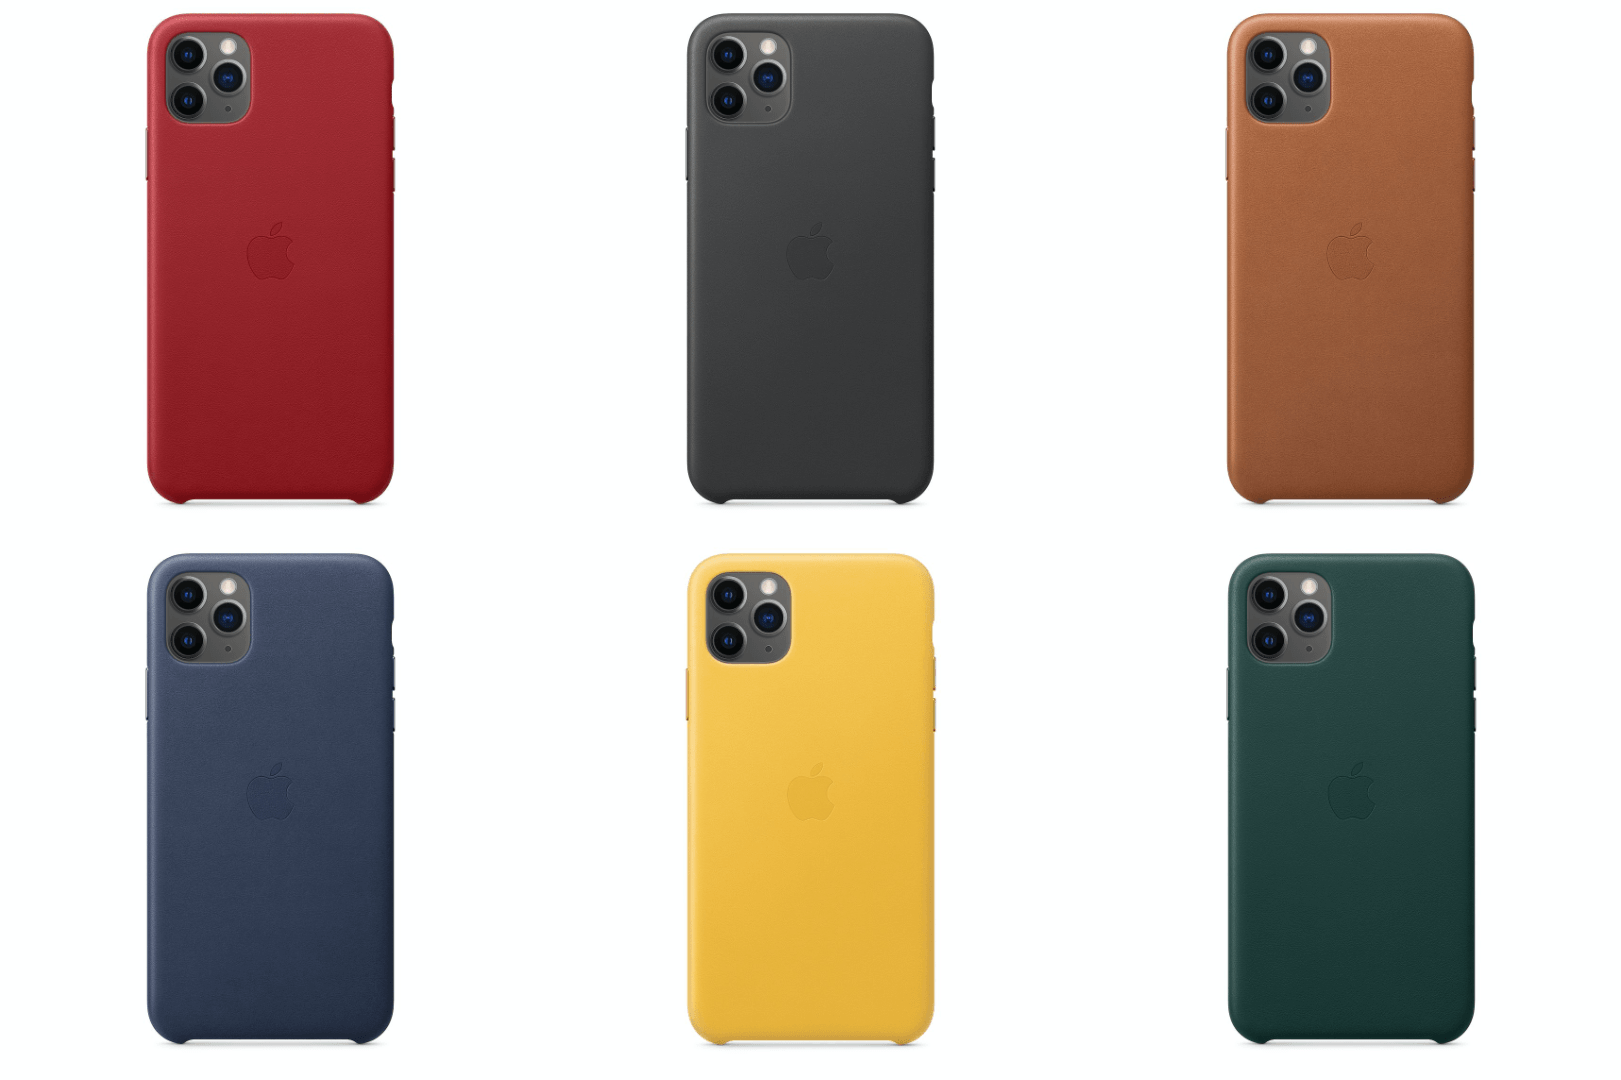 Product Red, Black, Saddle Brown, Midnight Blue, Forest Green, and Meyer Lemon.